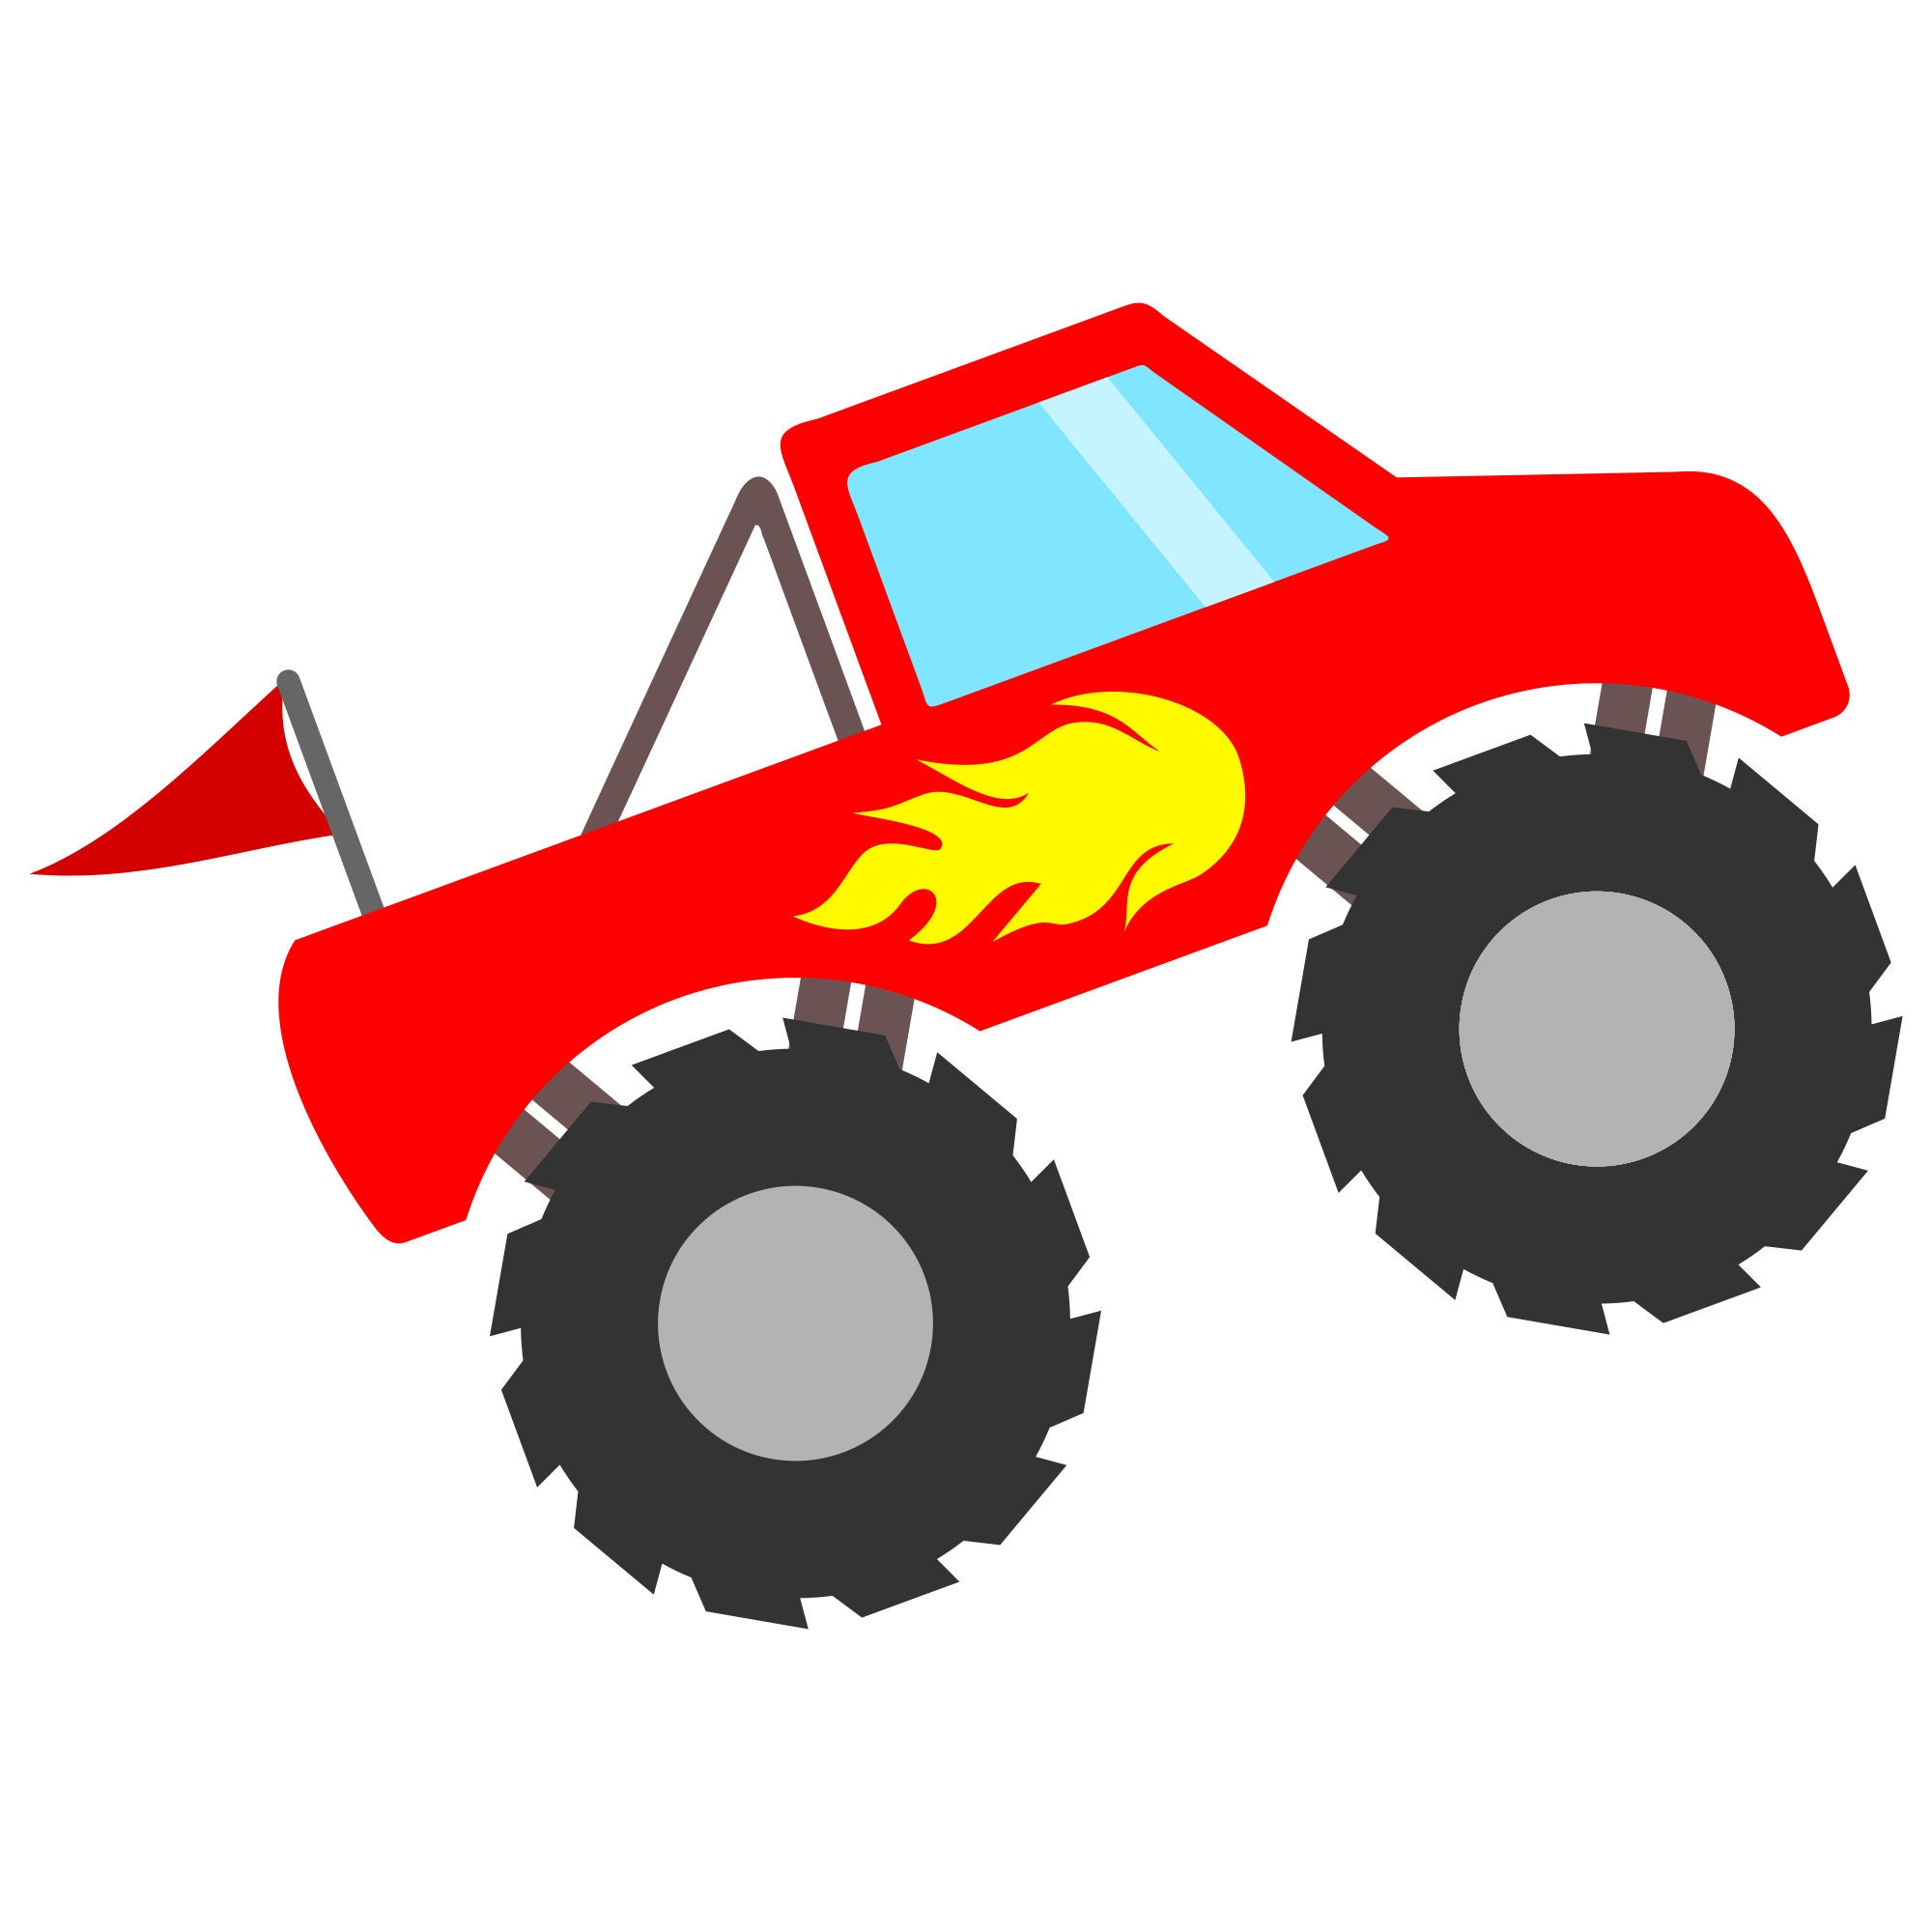 red monster truck svg file with flames and flag monster truck shirt rh etsystudio com monster truck clip art free monster truck clipart png